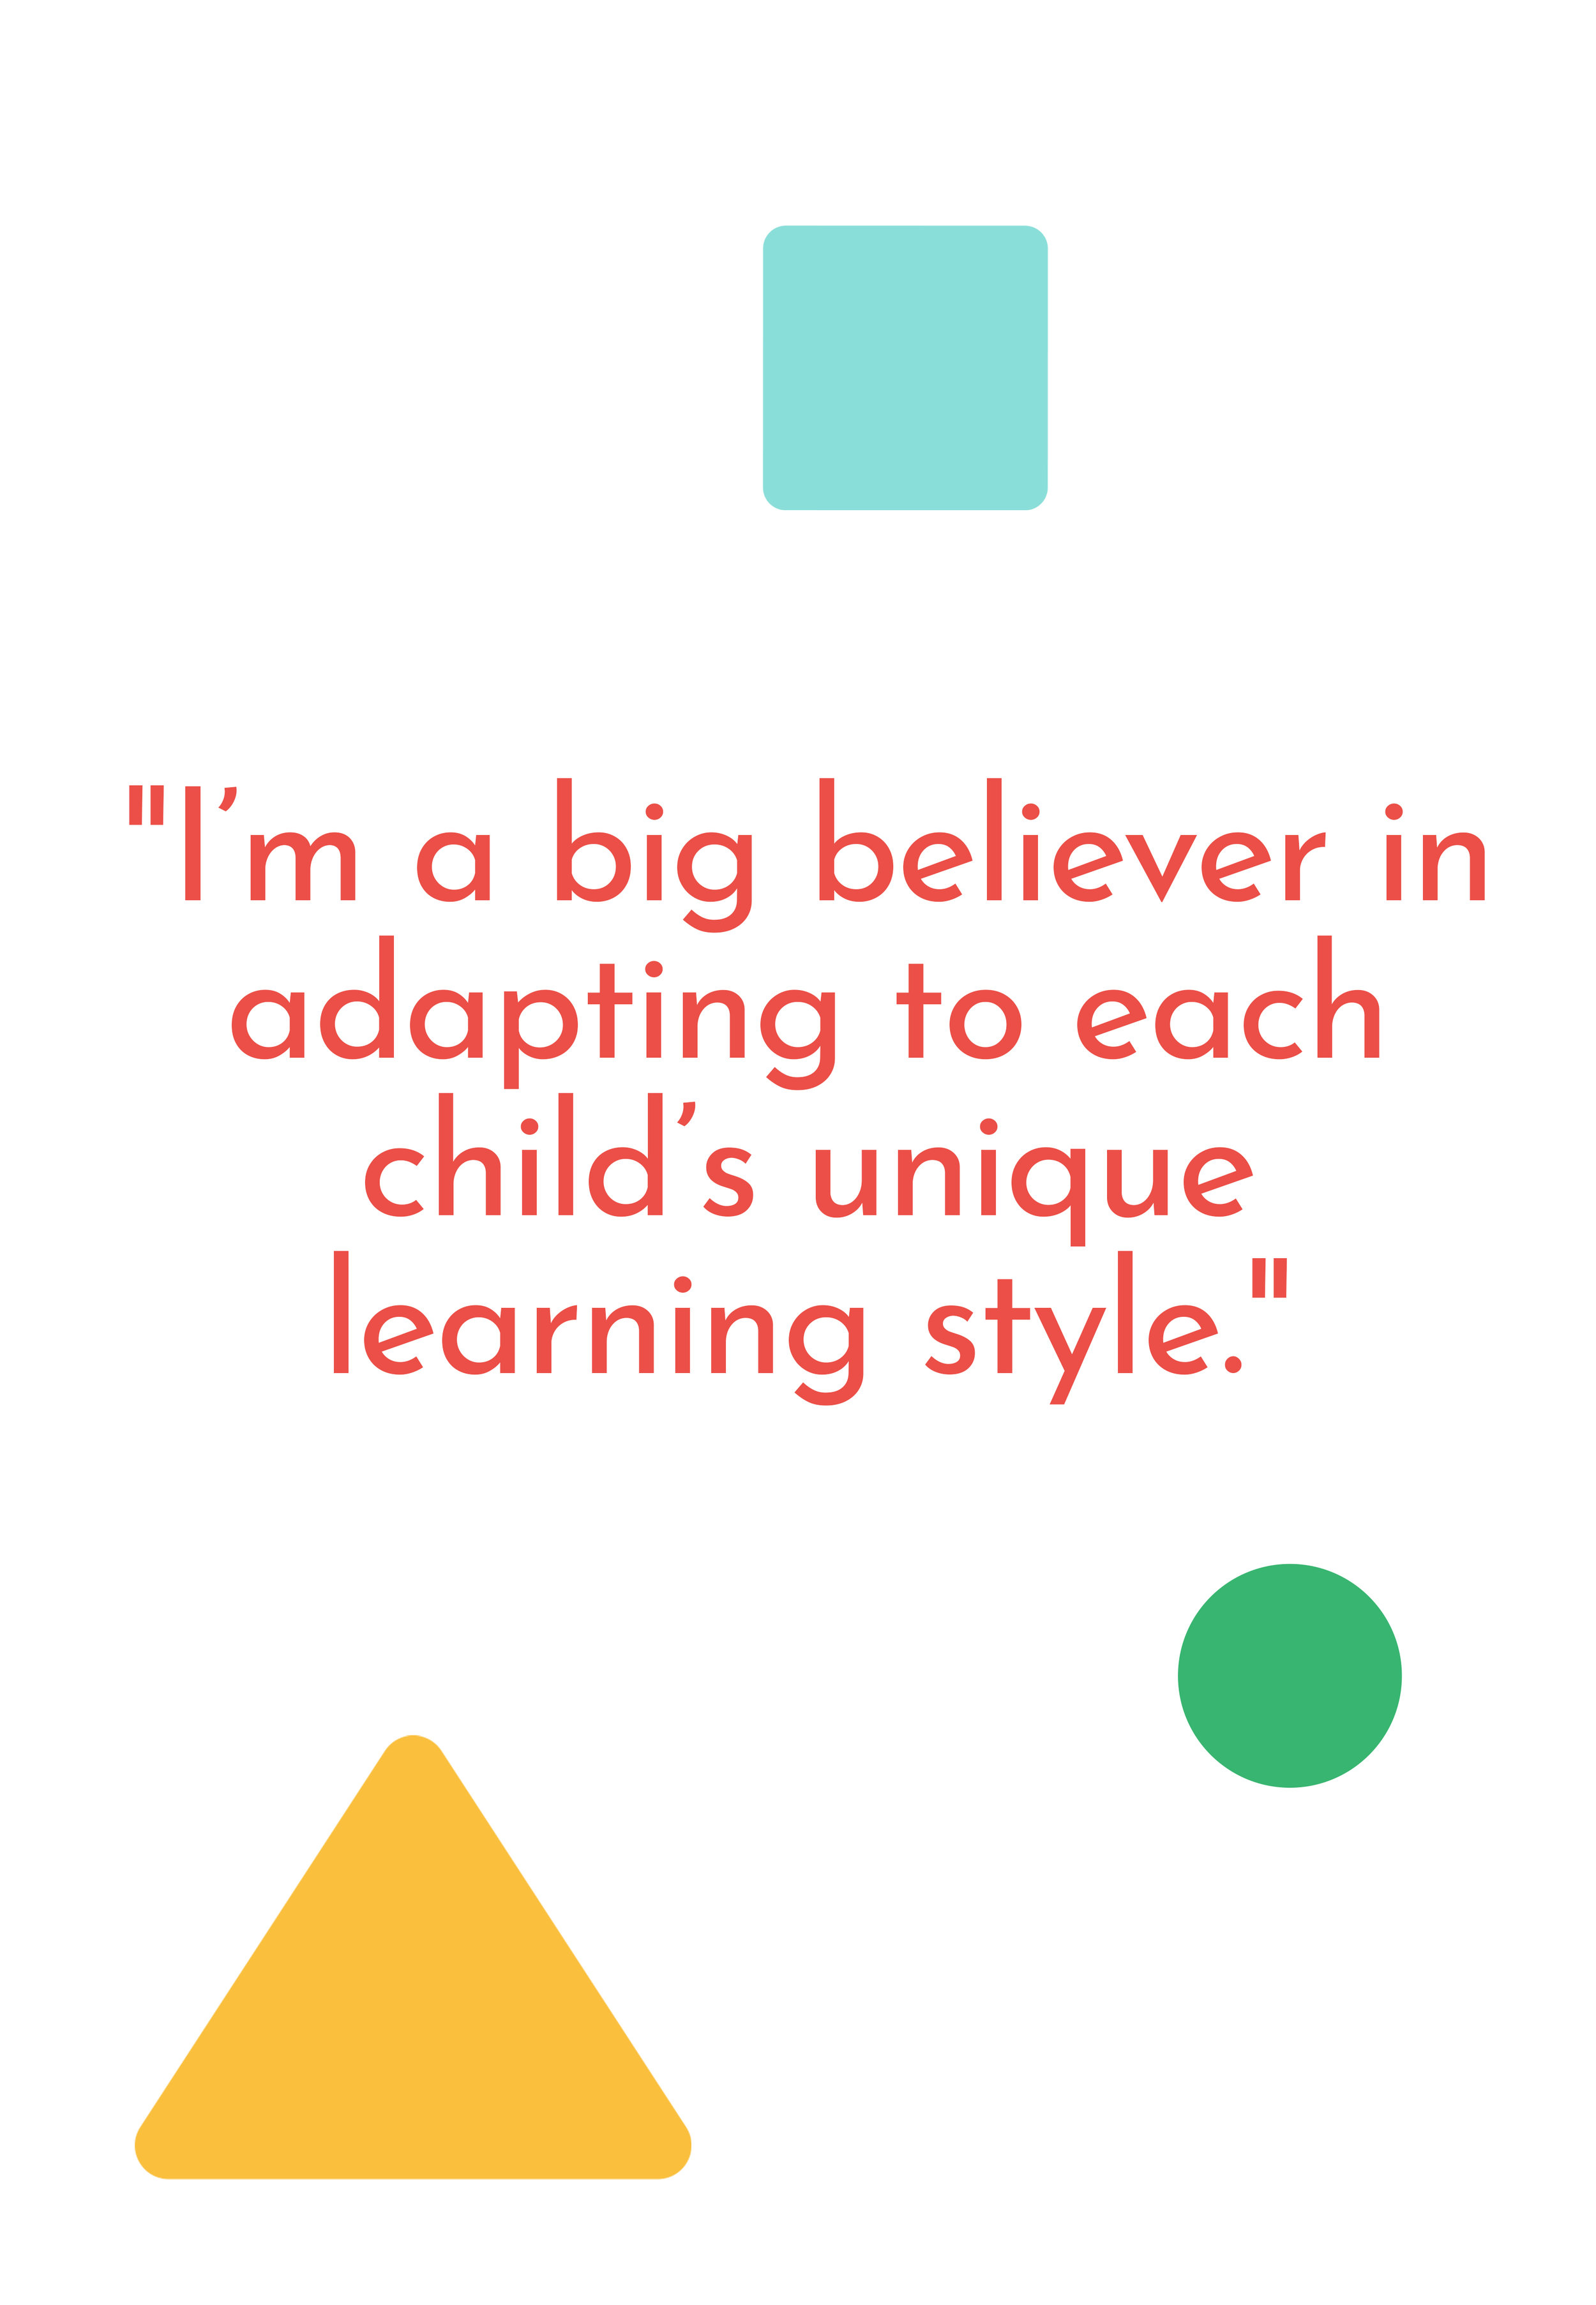 """I'm a big believer in adapting to each child's unique learning style."" - Mr. Edgar says of his daycare in Brockton, MA."